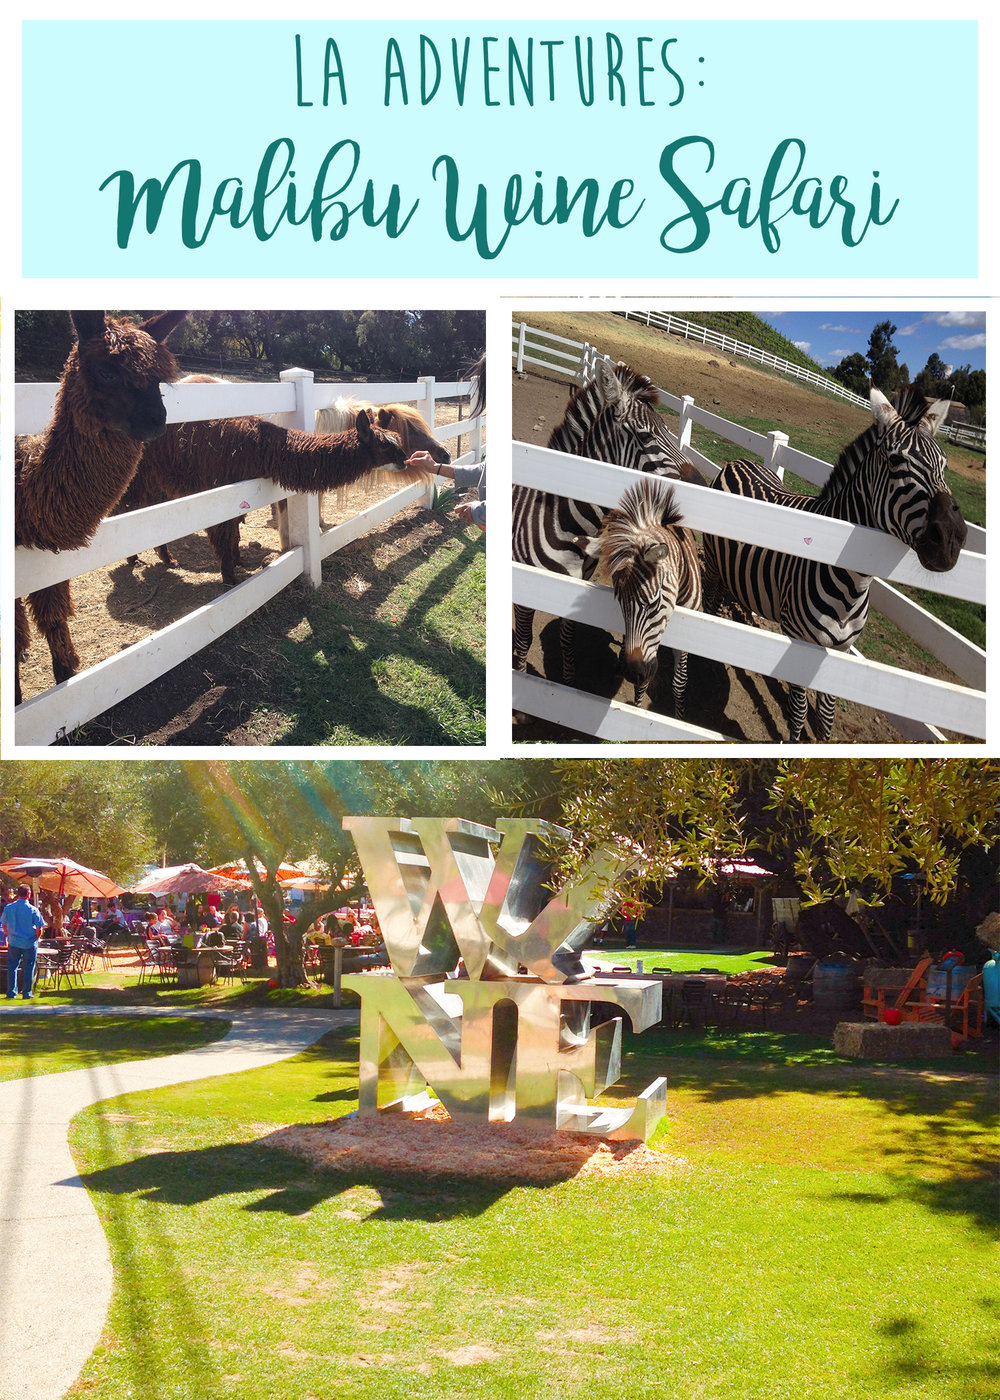 Malibu Wine Safari - Wandering Jokas Travel Blog